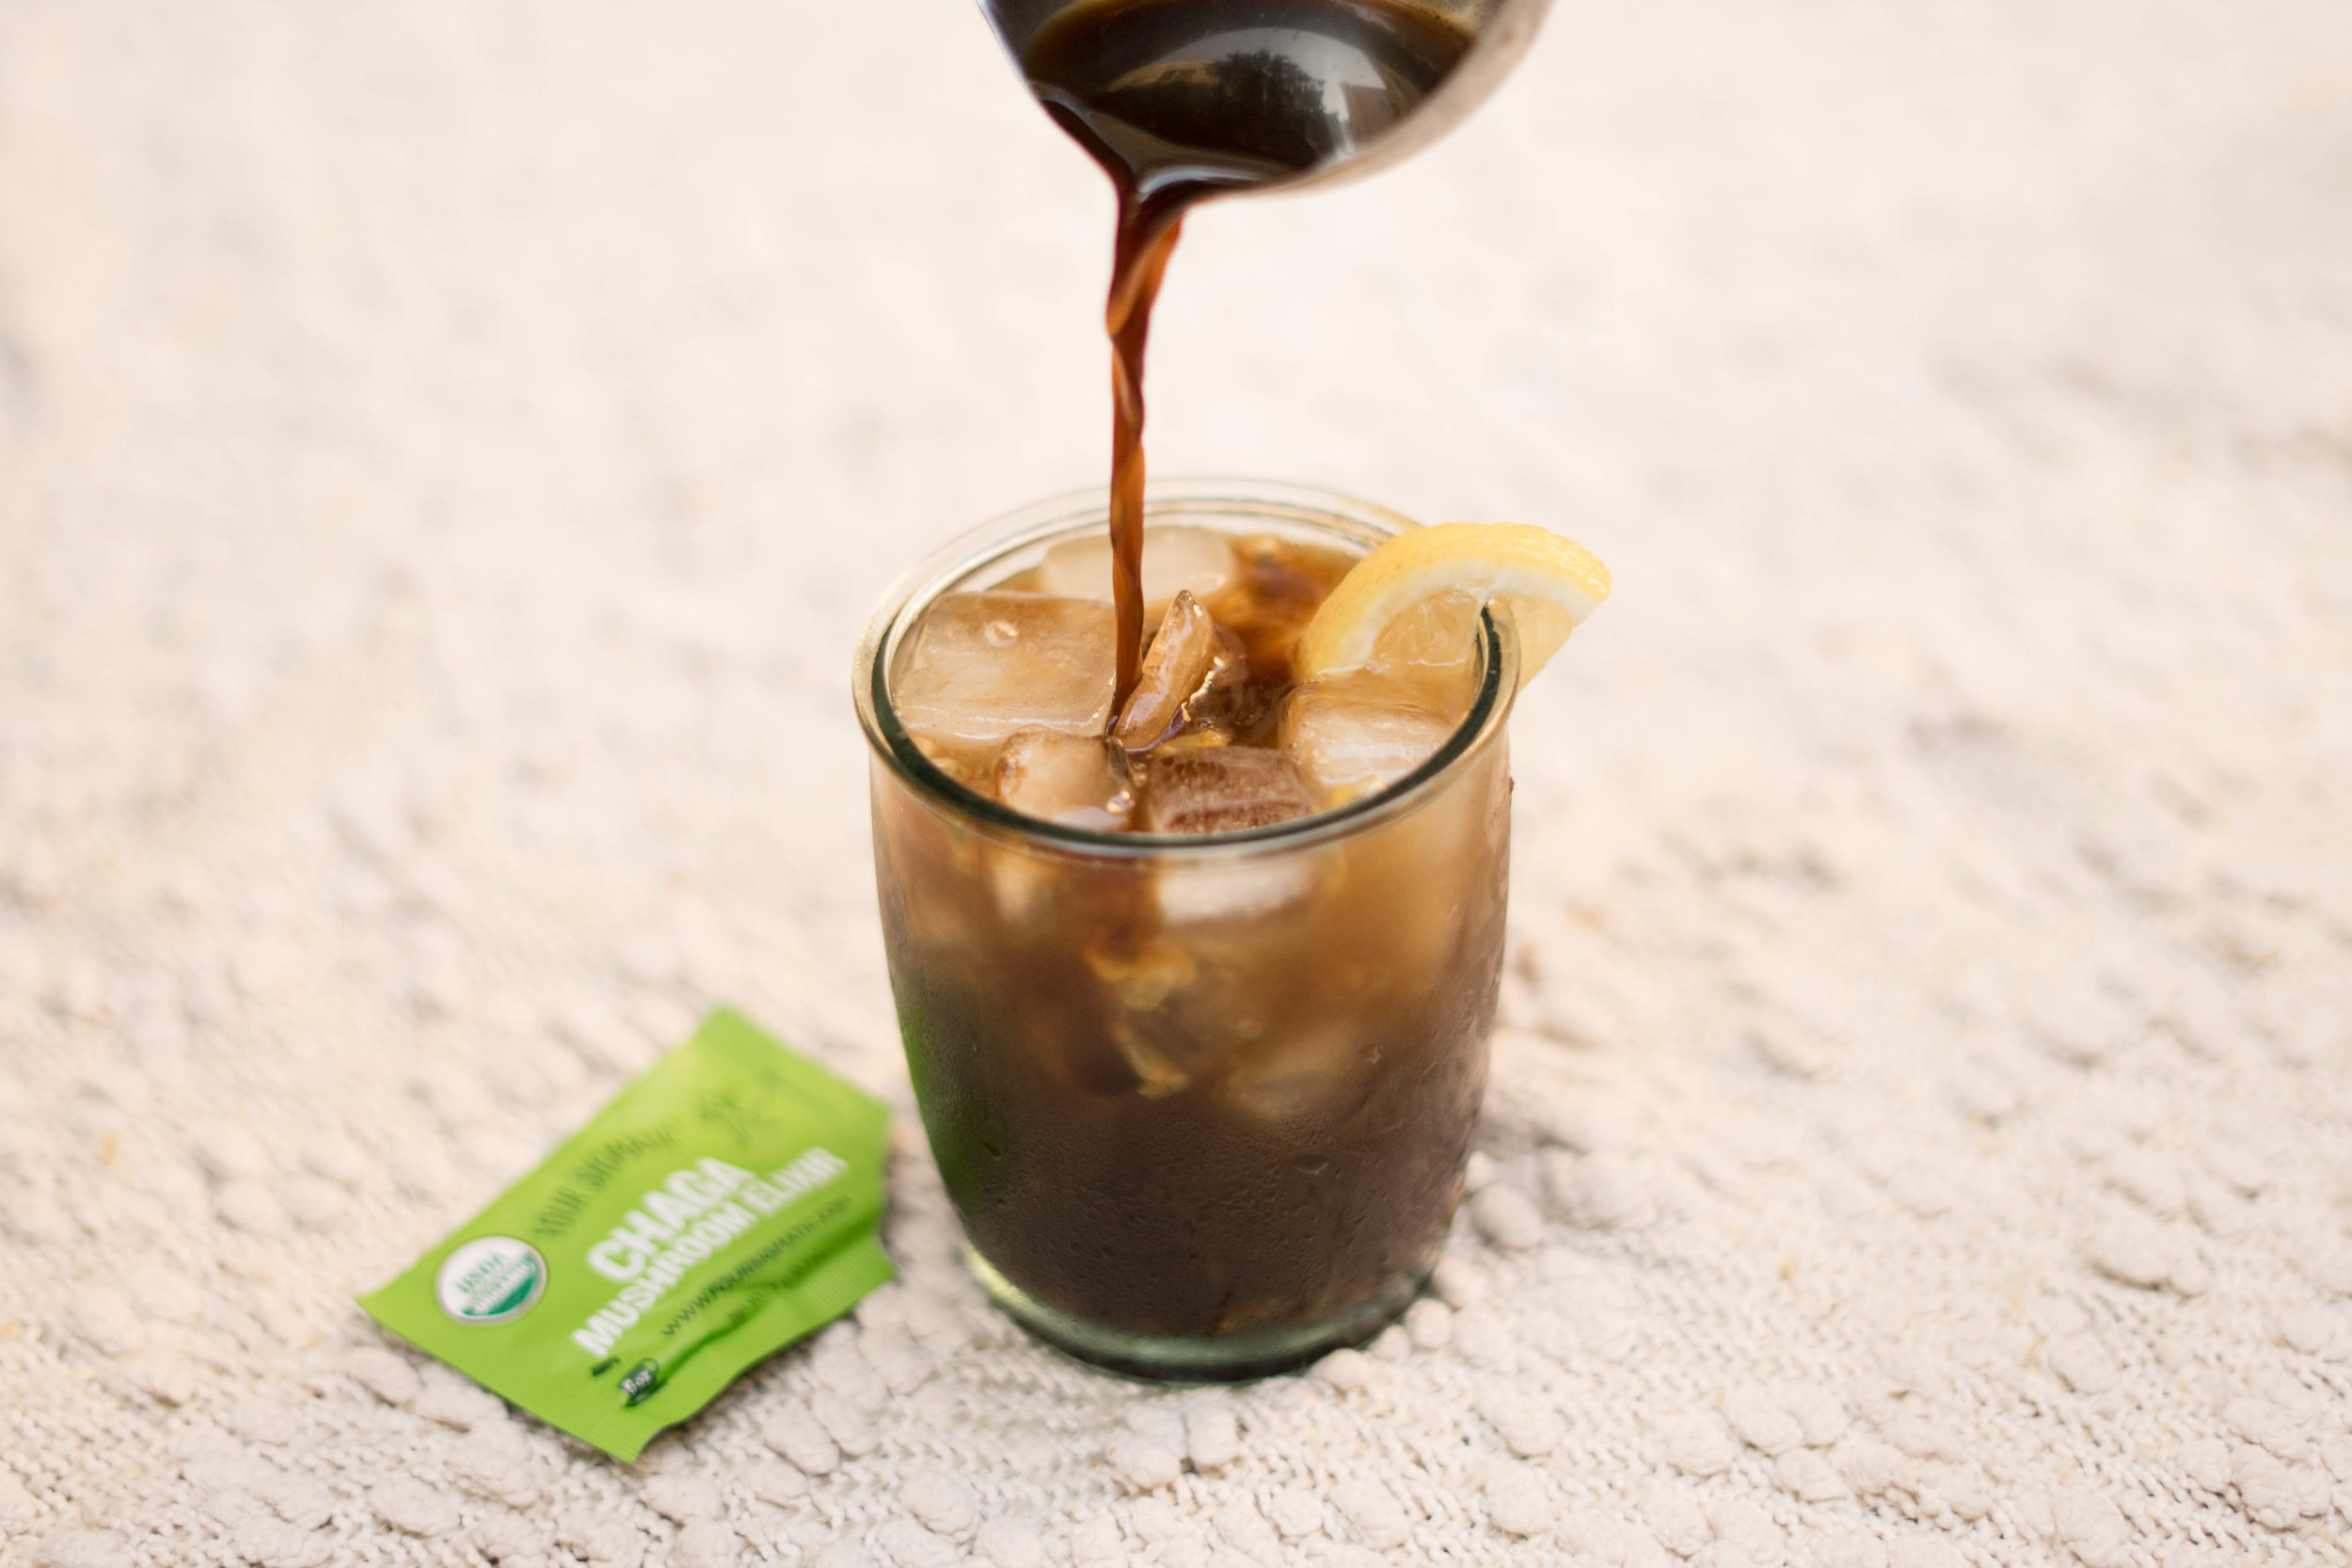 I shared Four Sigmatic's easy-to-make recipe for a refreshing  Chaga Ice Tea  on my blog -  check it out  here  !